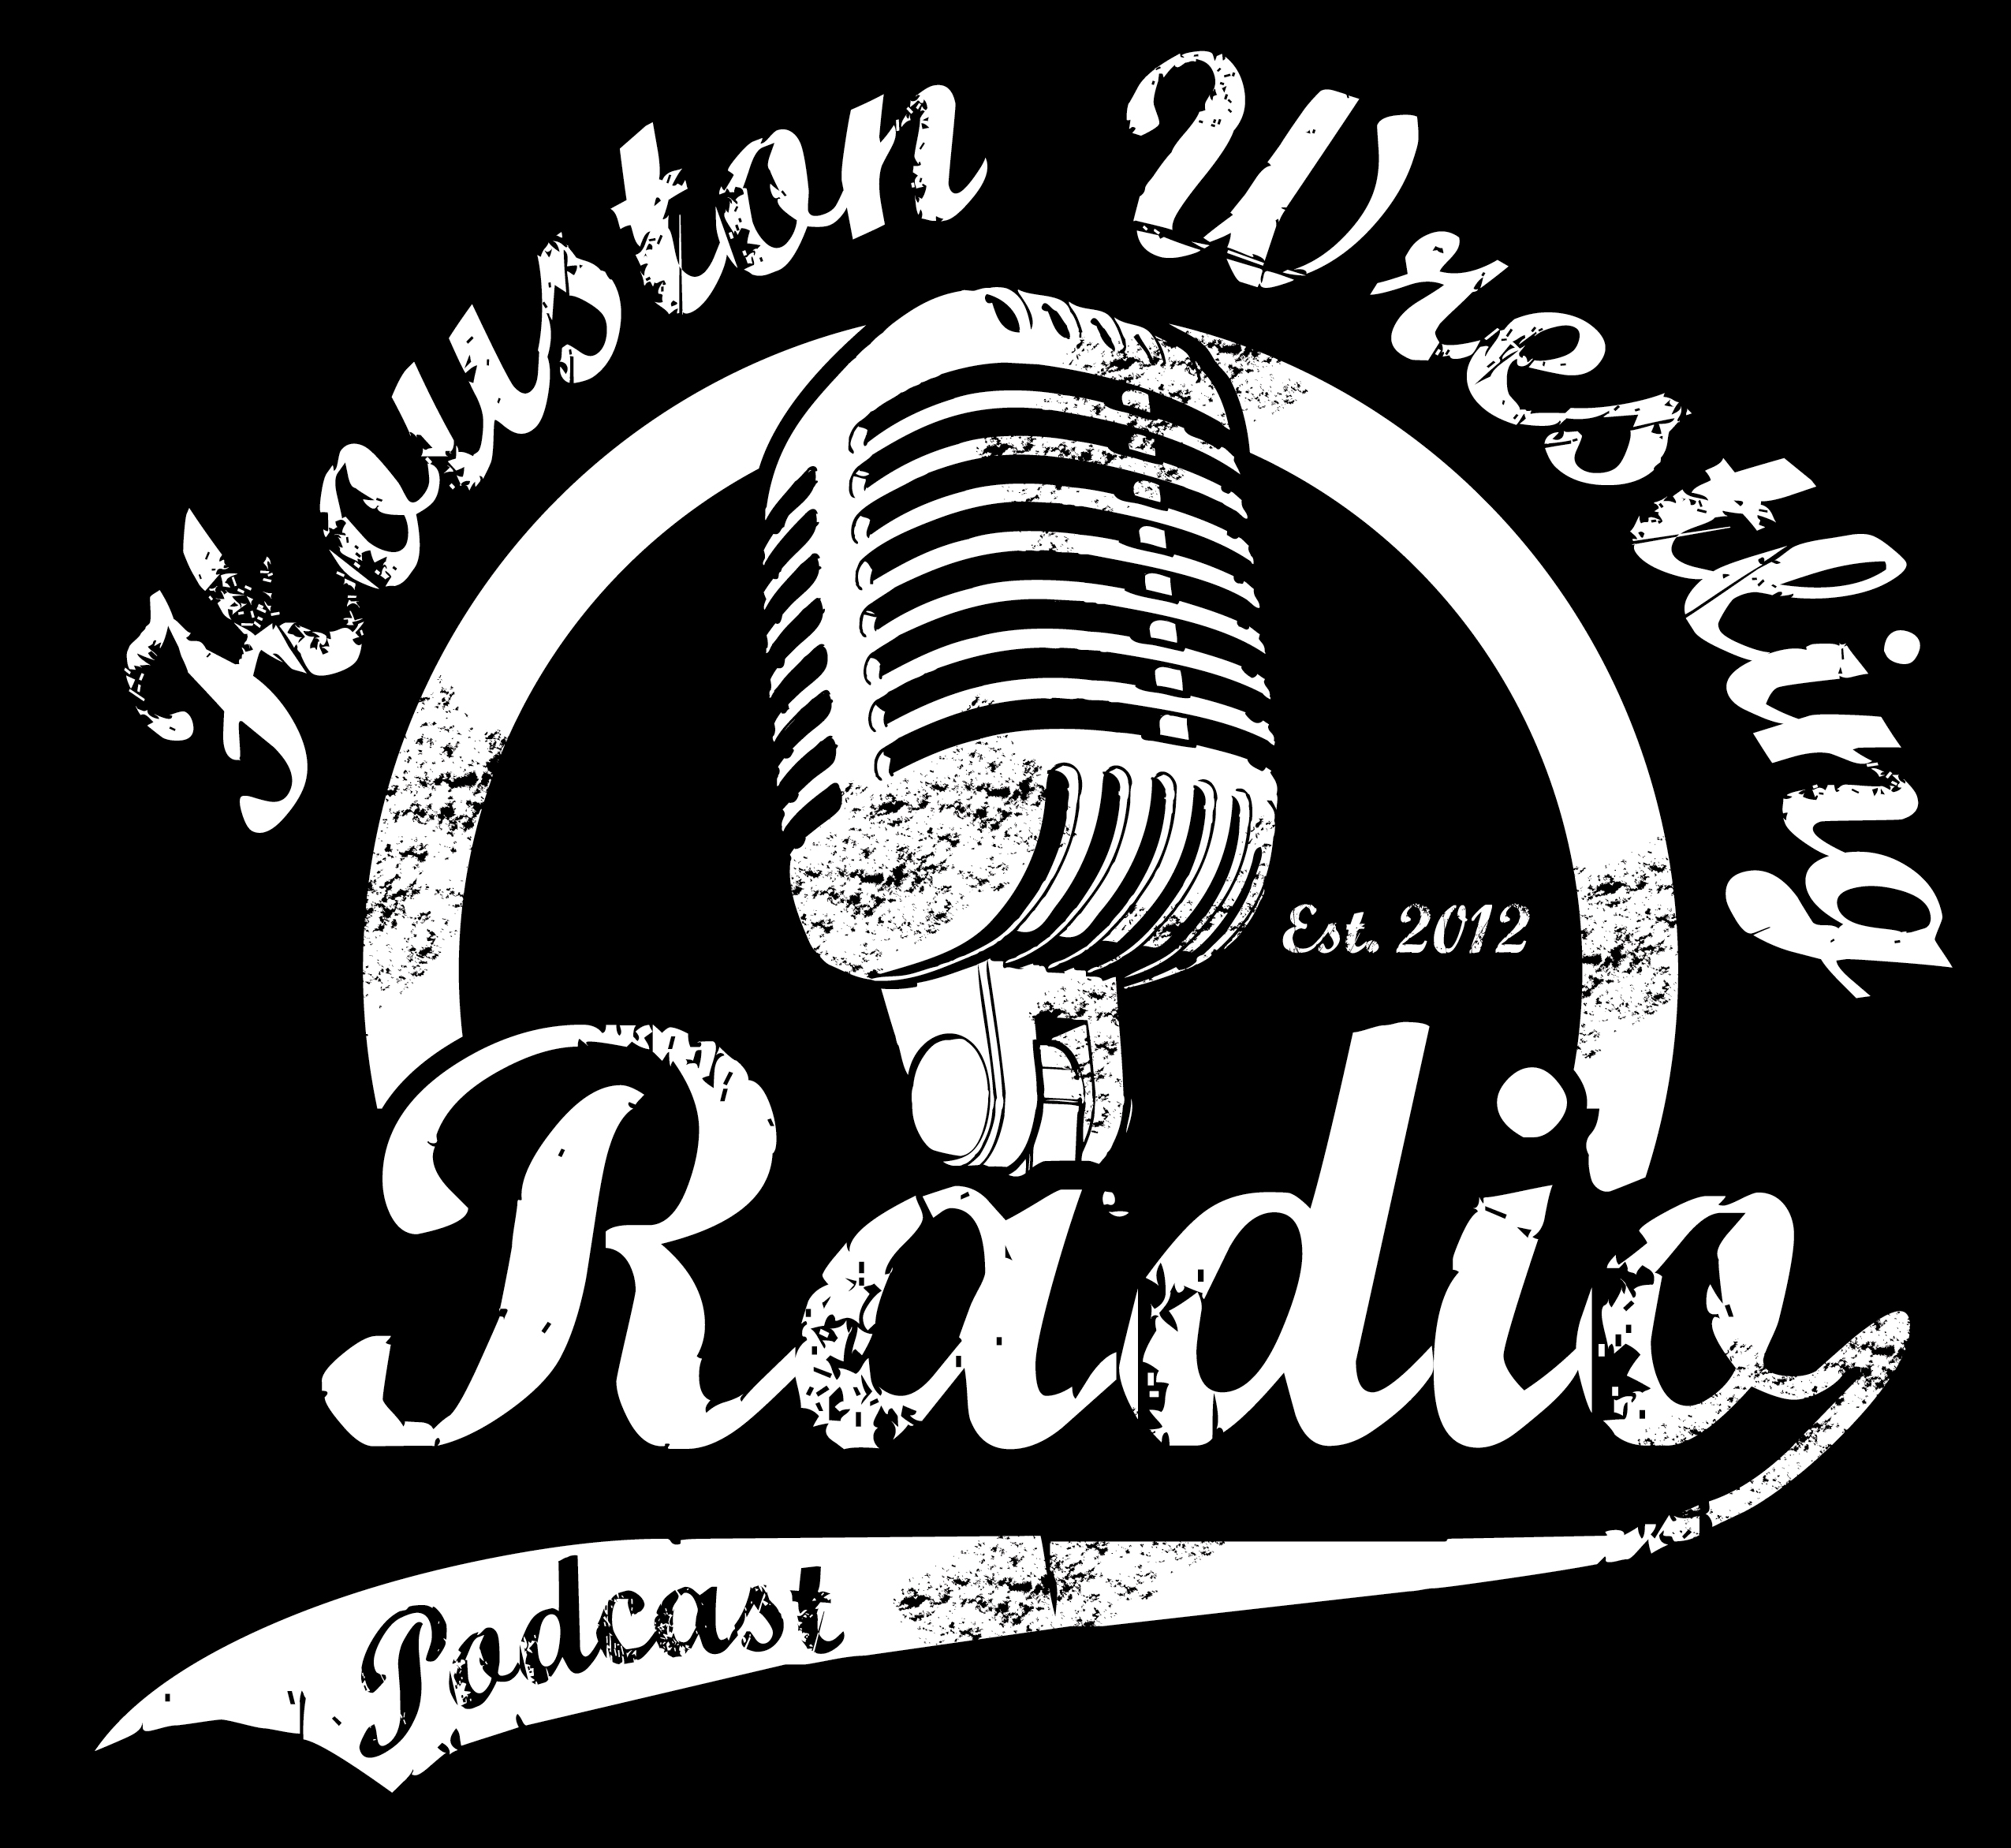 HWR: Houston Wrestling Radio